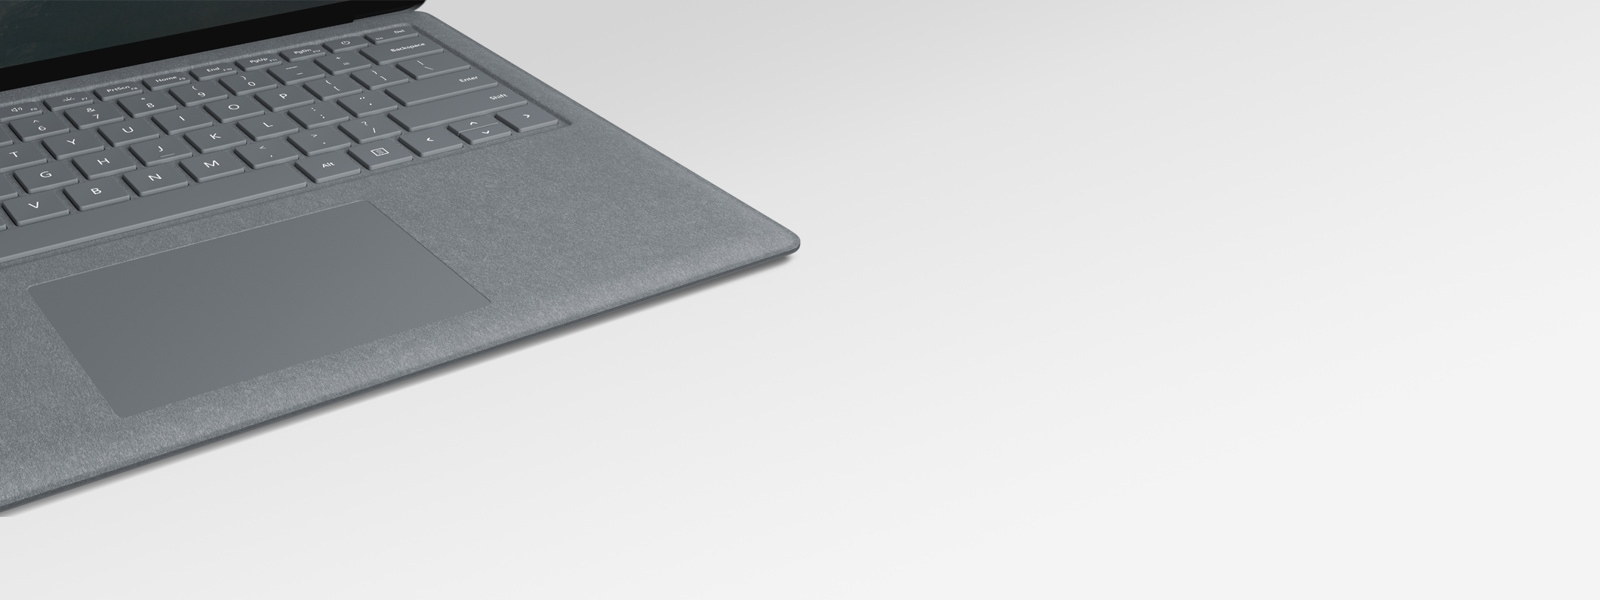 Tastiera e trackpad di un computer Surface Laptop 2